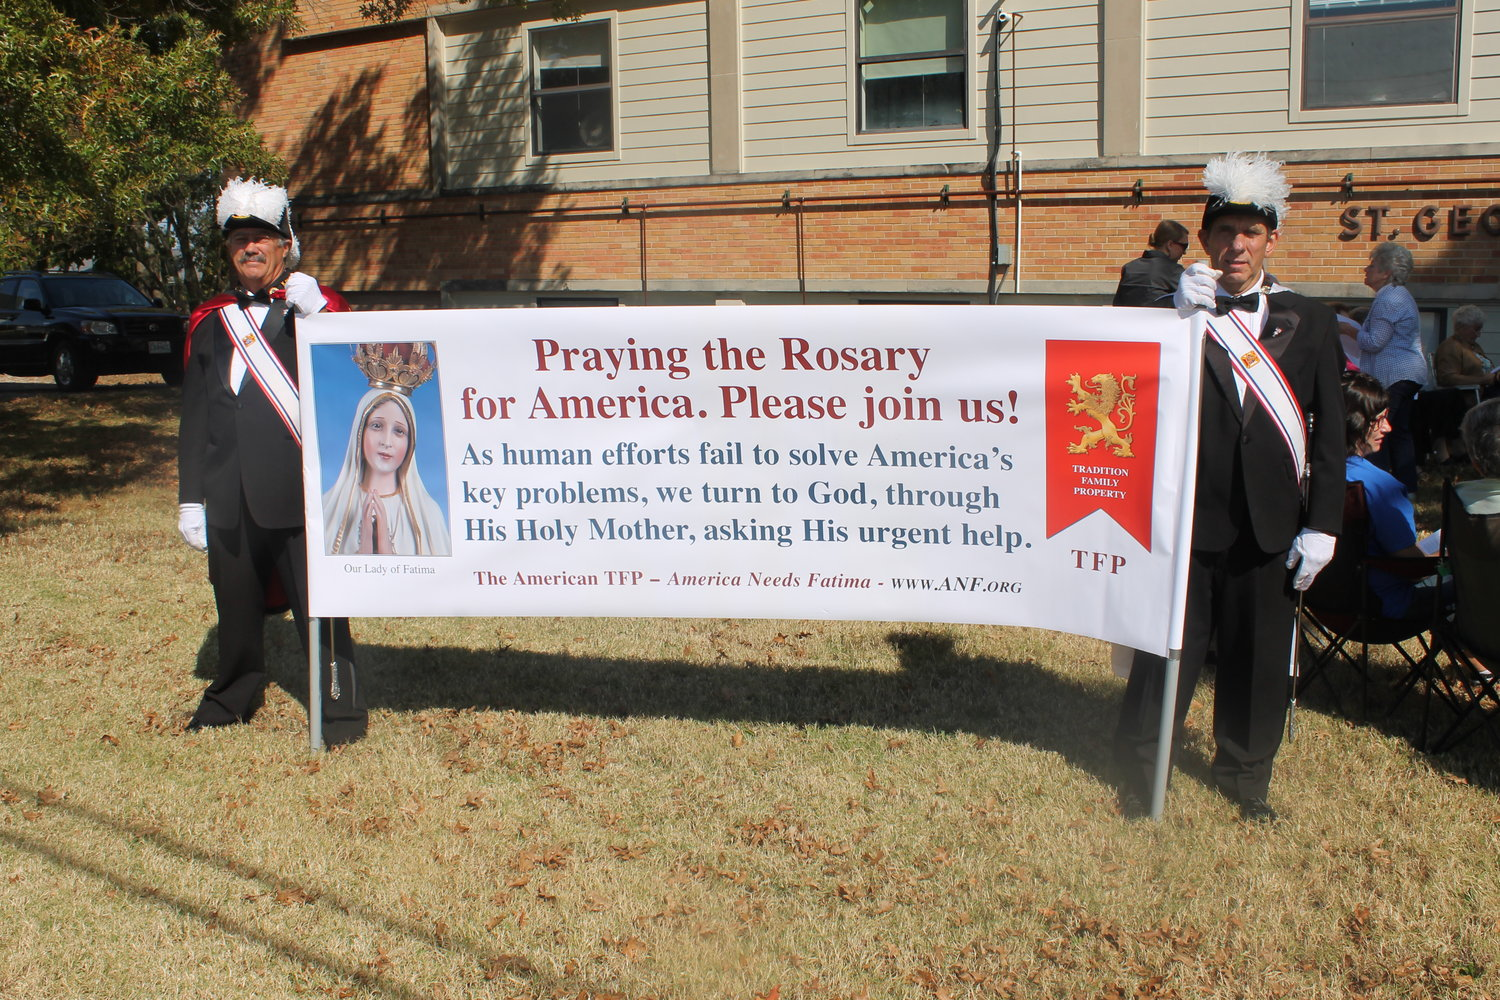 Fourth Degree Knights of Columbus carry a banner for a recent Public Rosary in the Square observance in Linn.